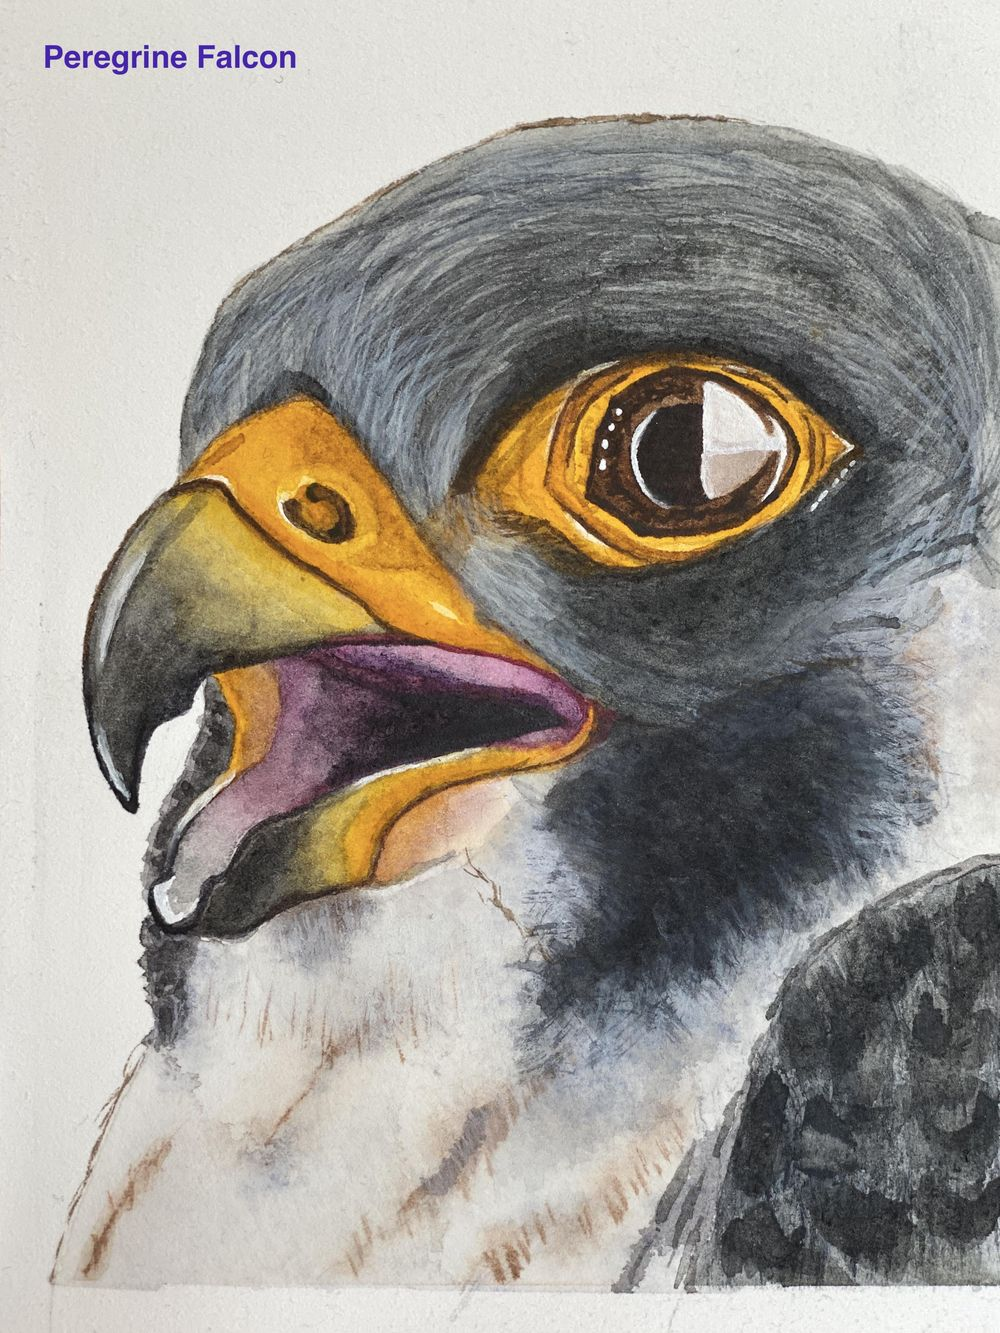 Peregrine Falcon - Eye Study - image 3 - student project